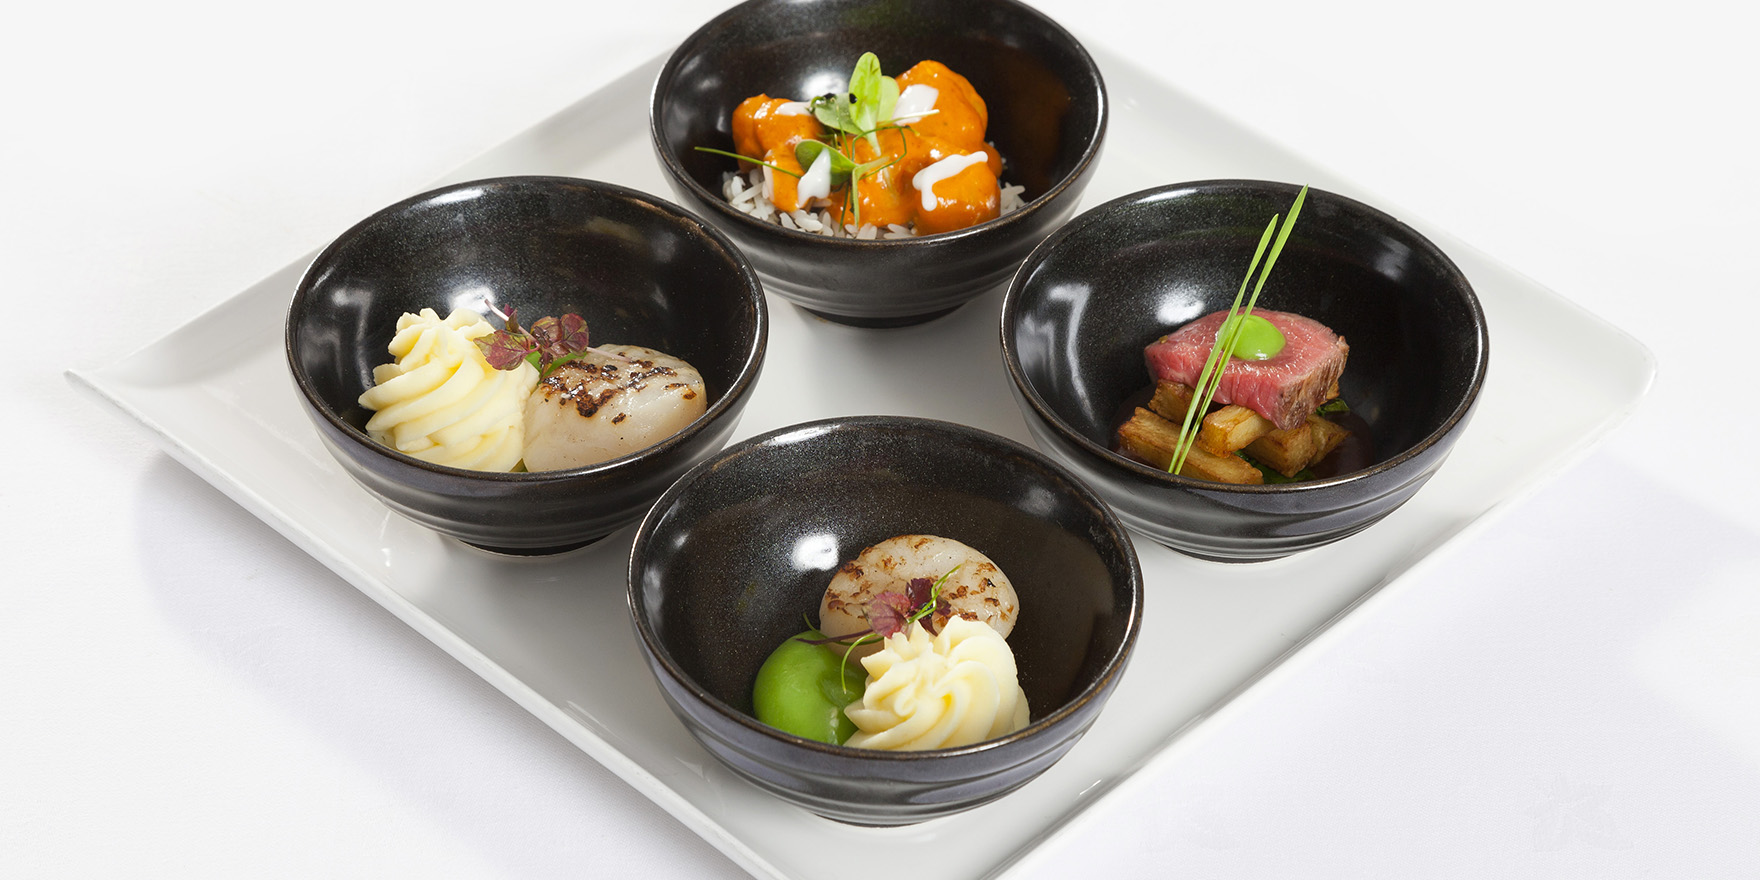 Selection from our Bowl Dining Menu